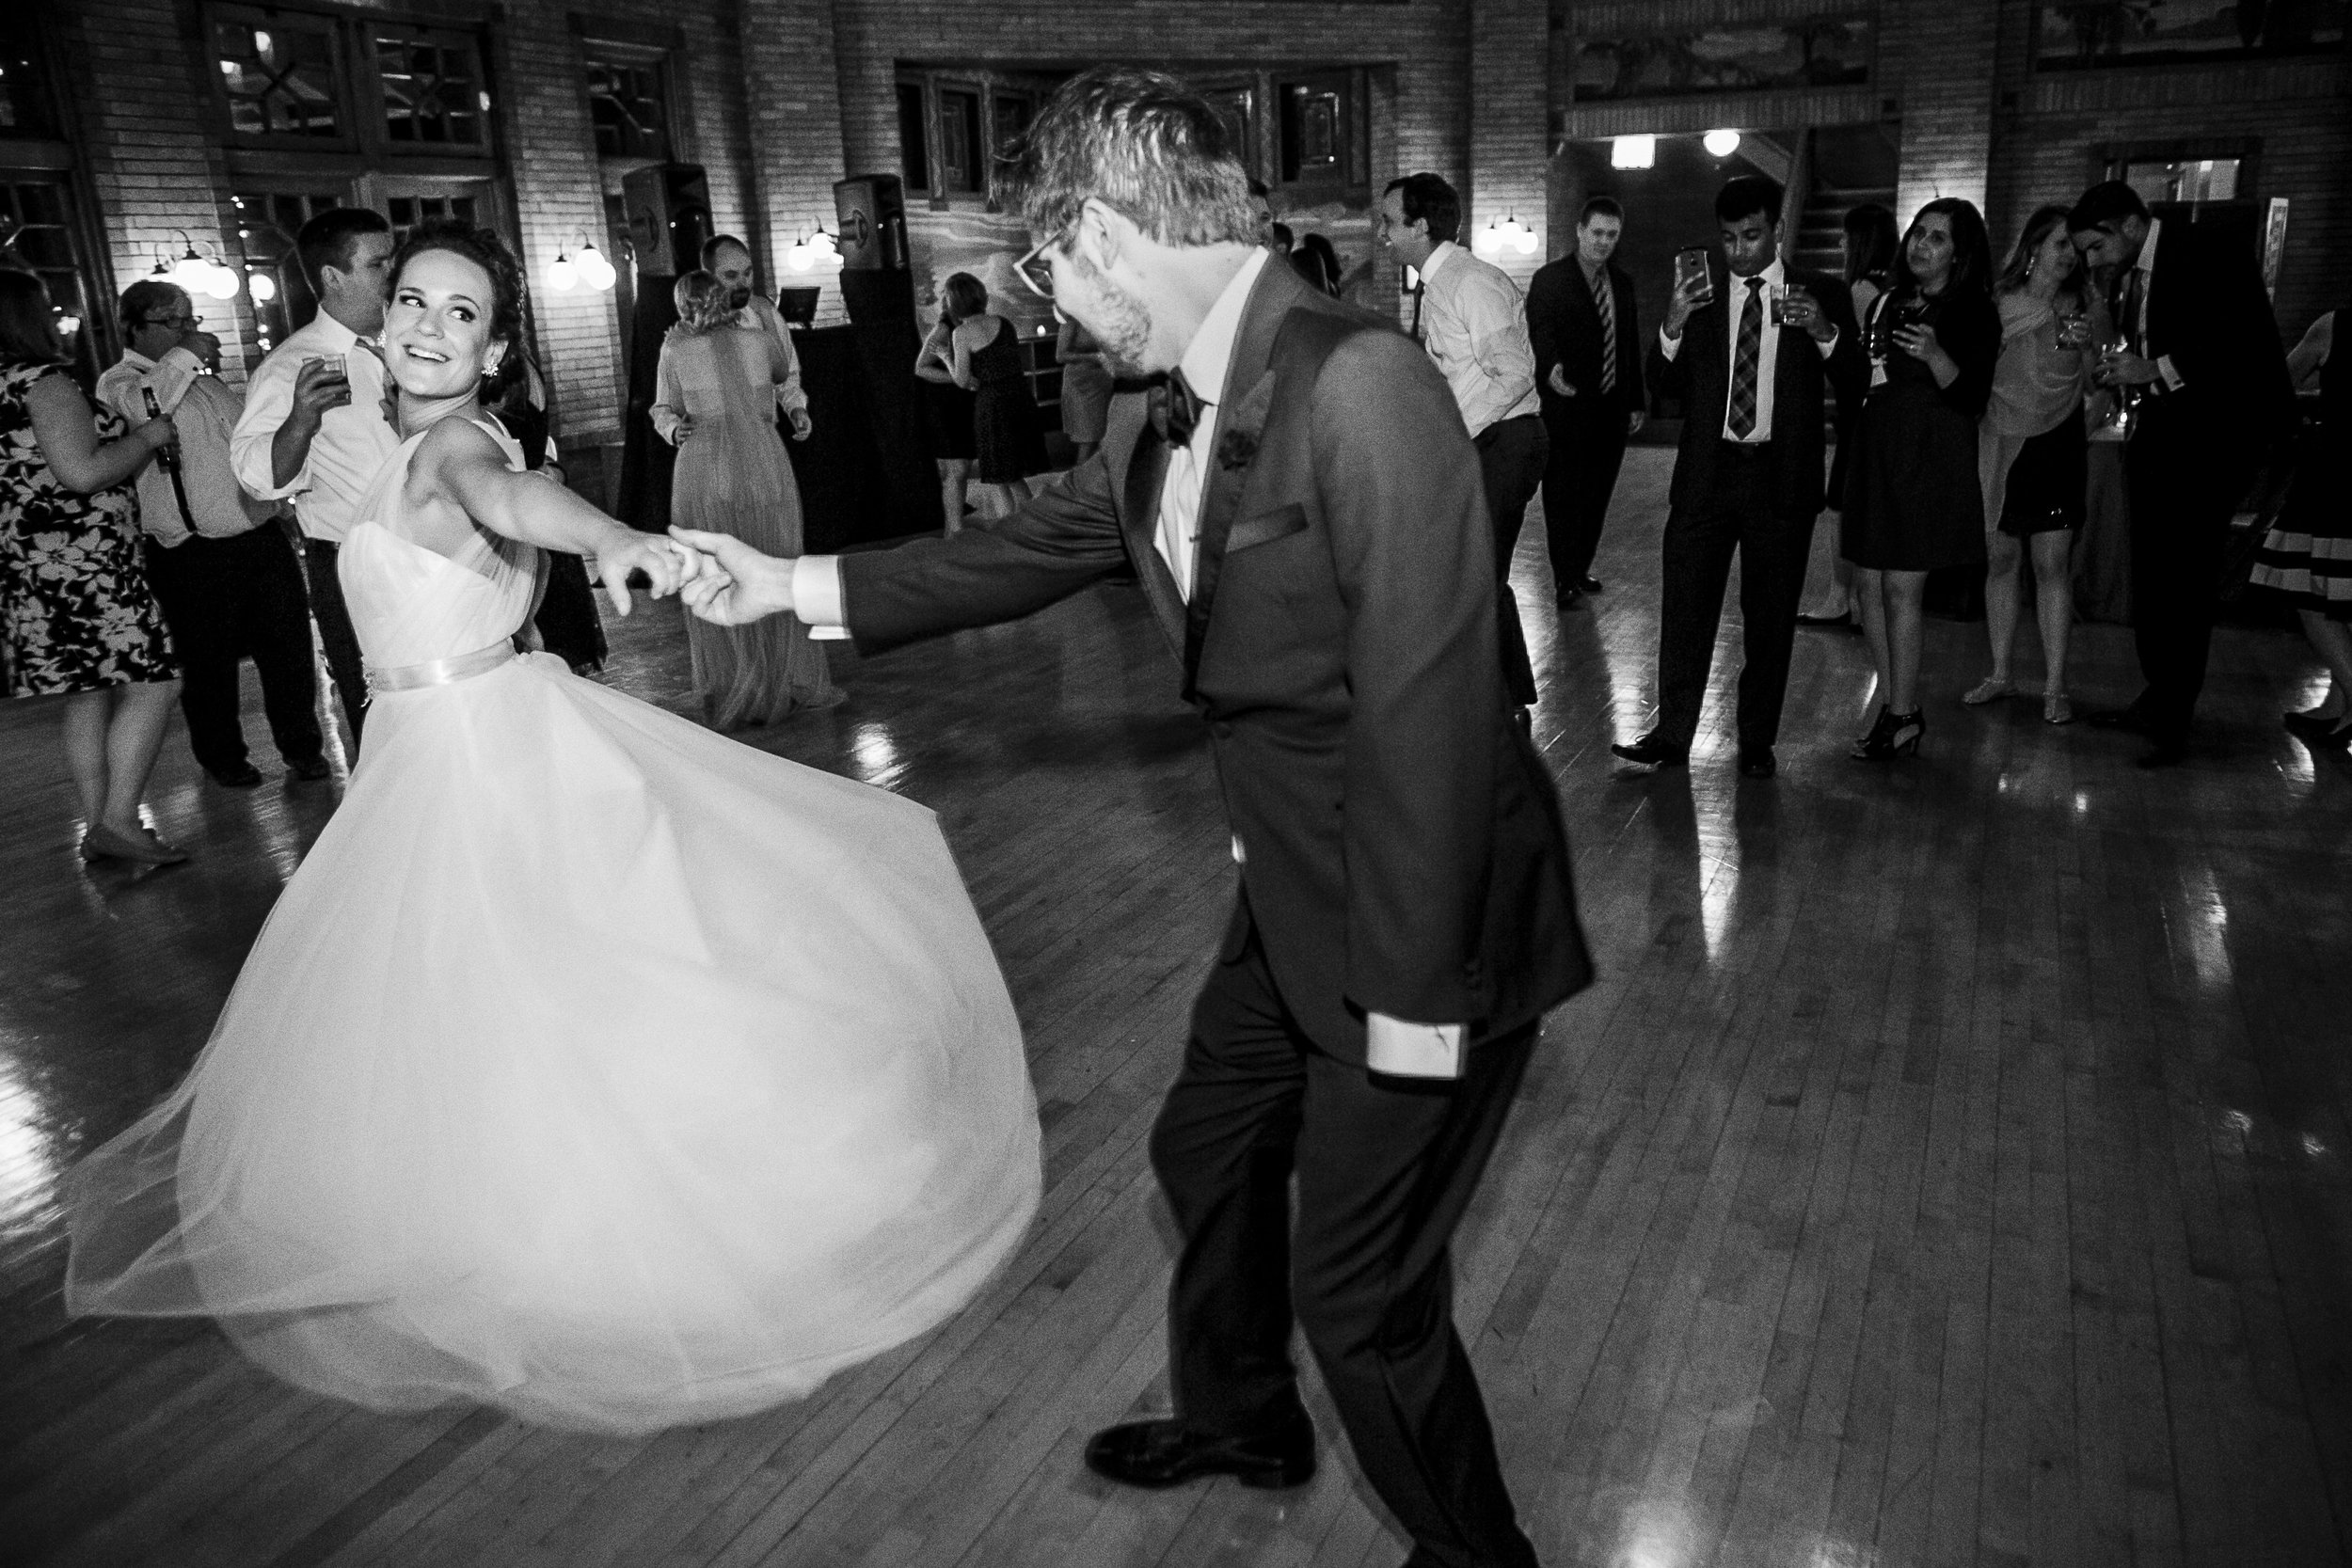 Dancing couple spinning during their first dance